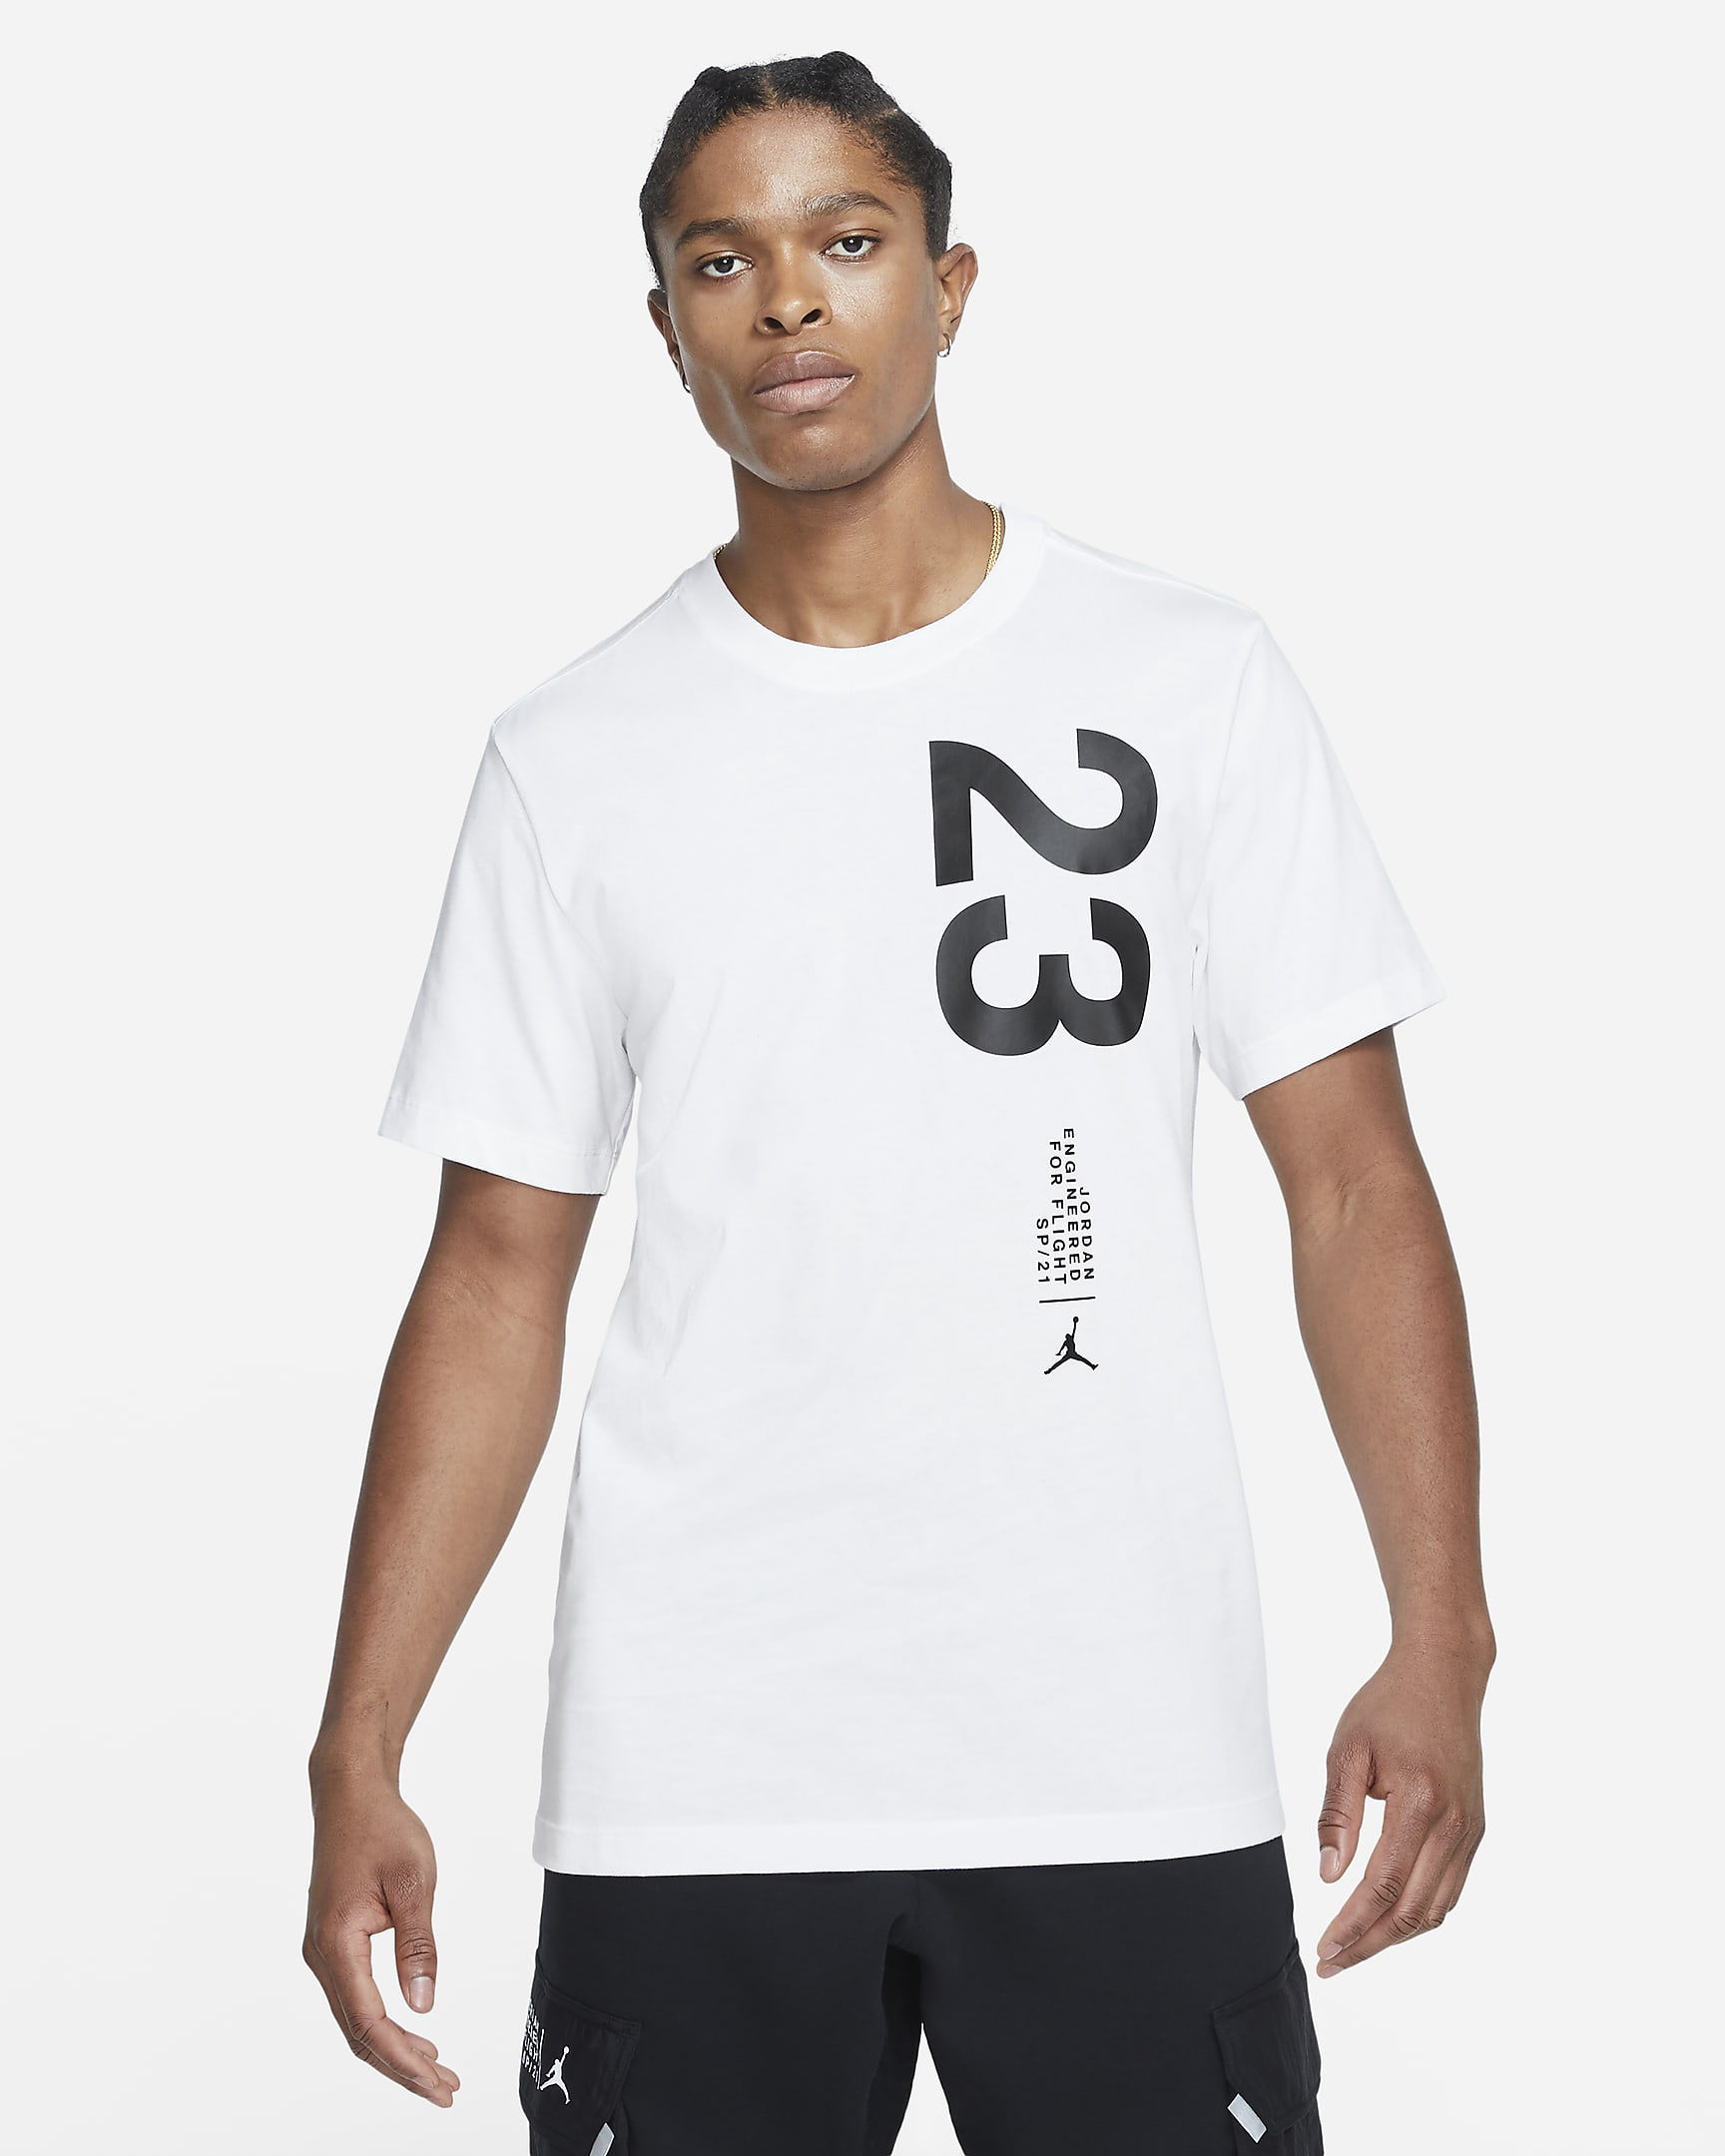 jordan-23-engineered-mens-short-sleeve-t-shirt-nHJnsd-3